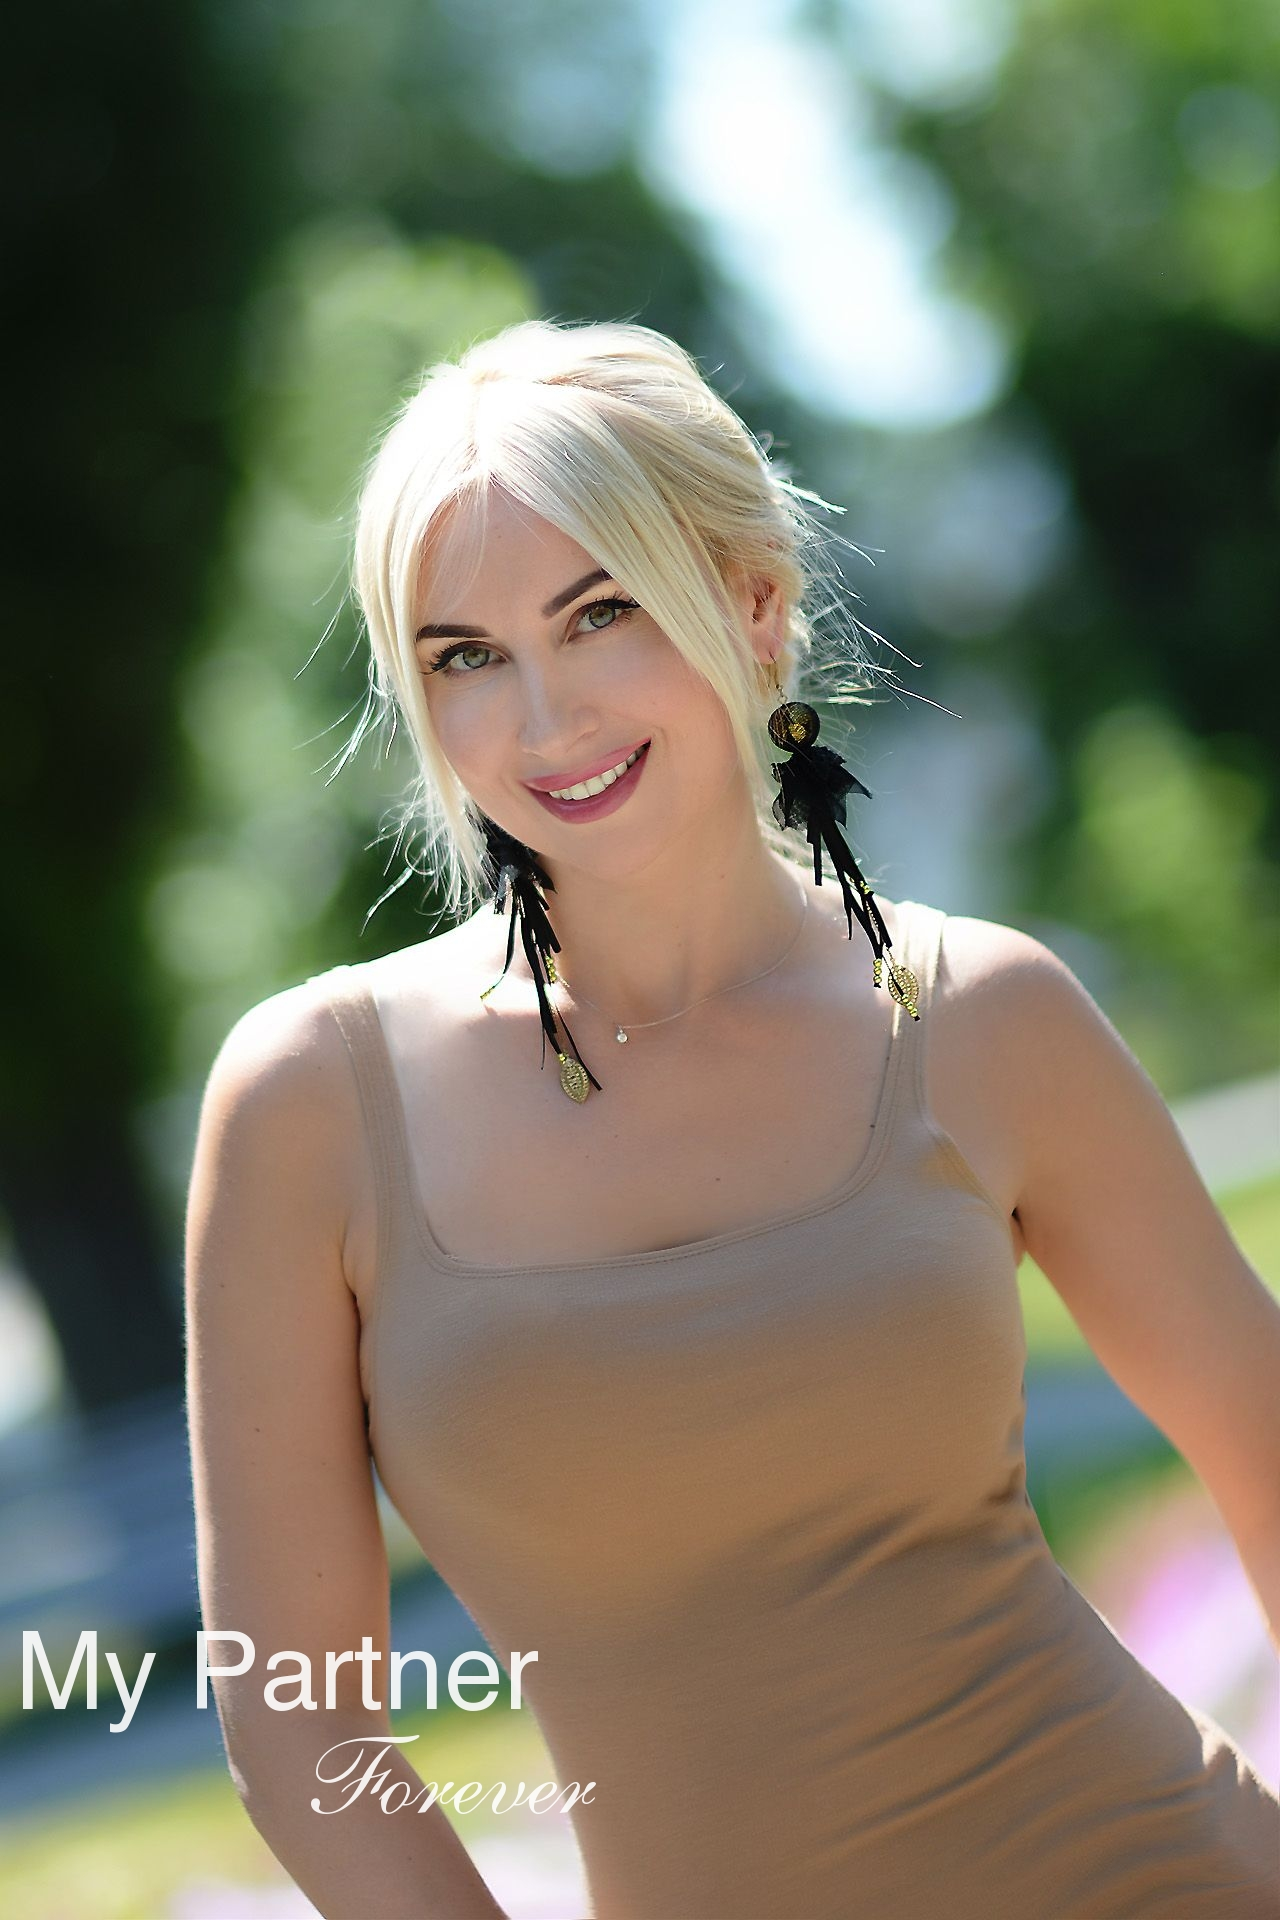 Dating with Beautiful Ukrainian Lady Marina from Kharkov, Ukraine